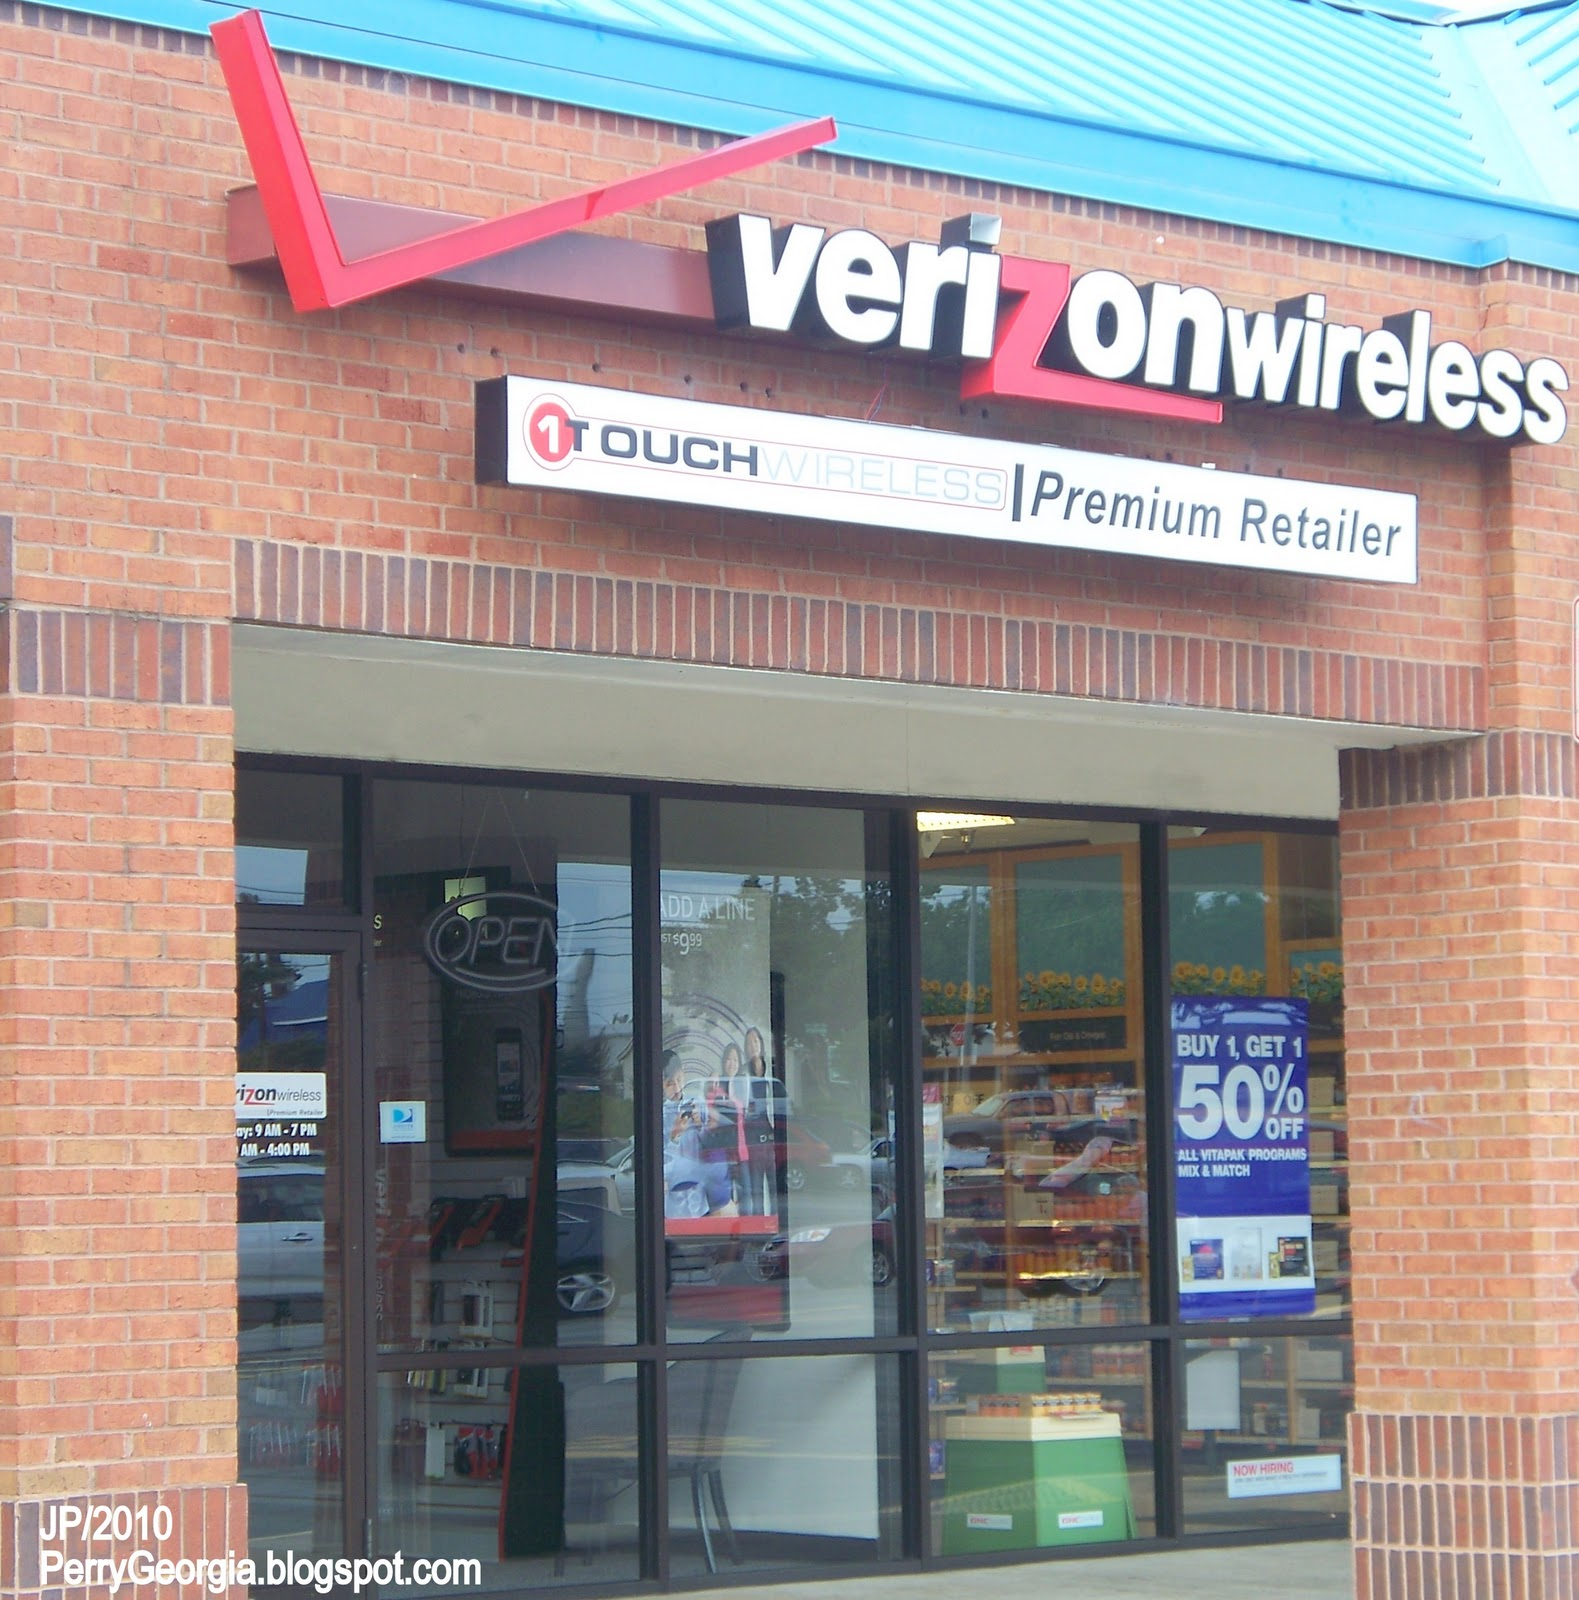 ... cell phone company, Verizon cell phone cellular service Perry GA